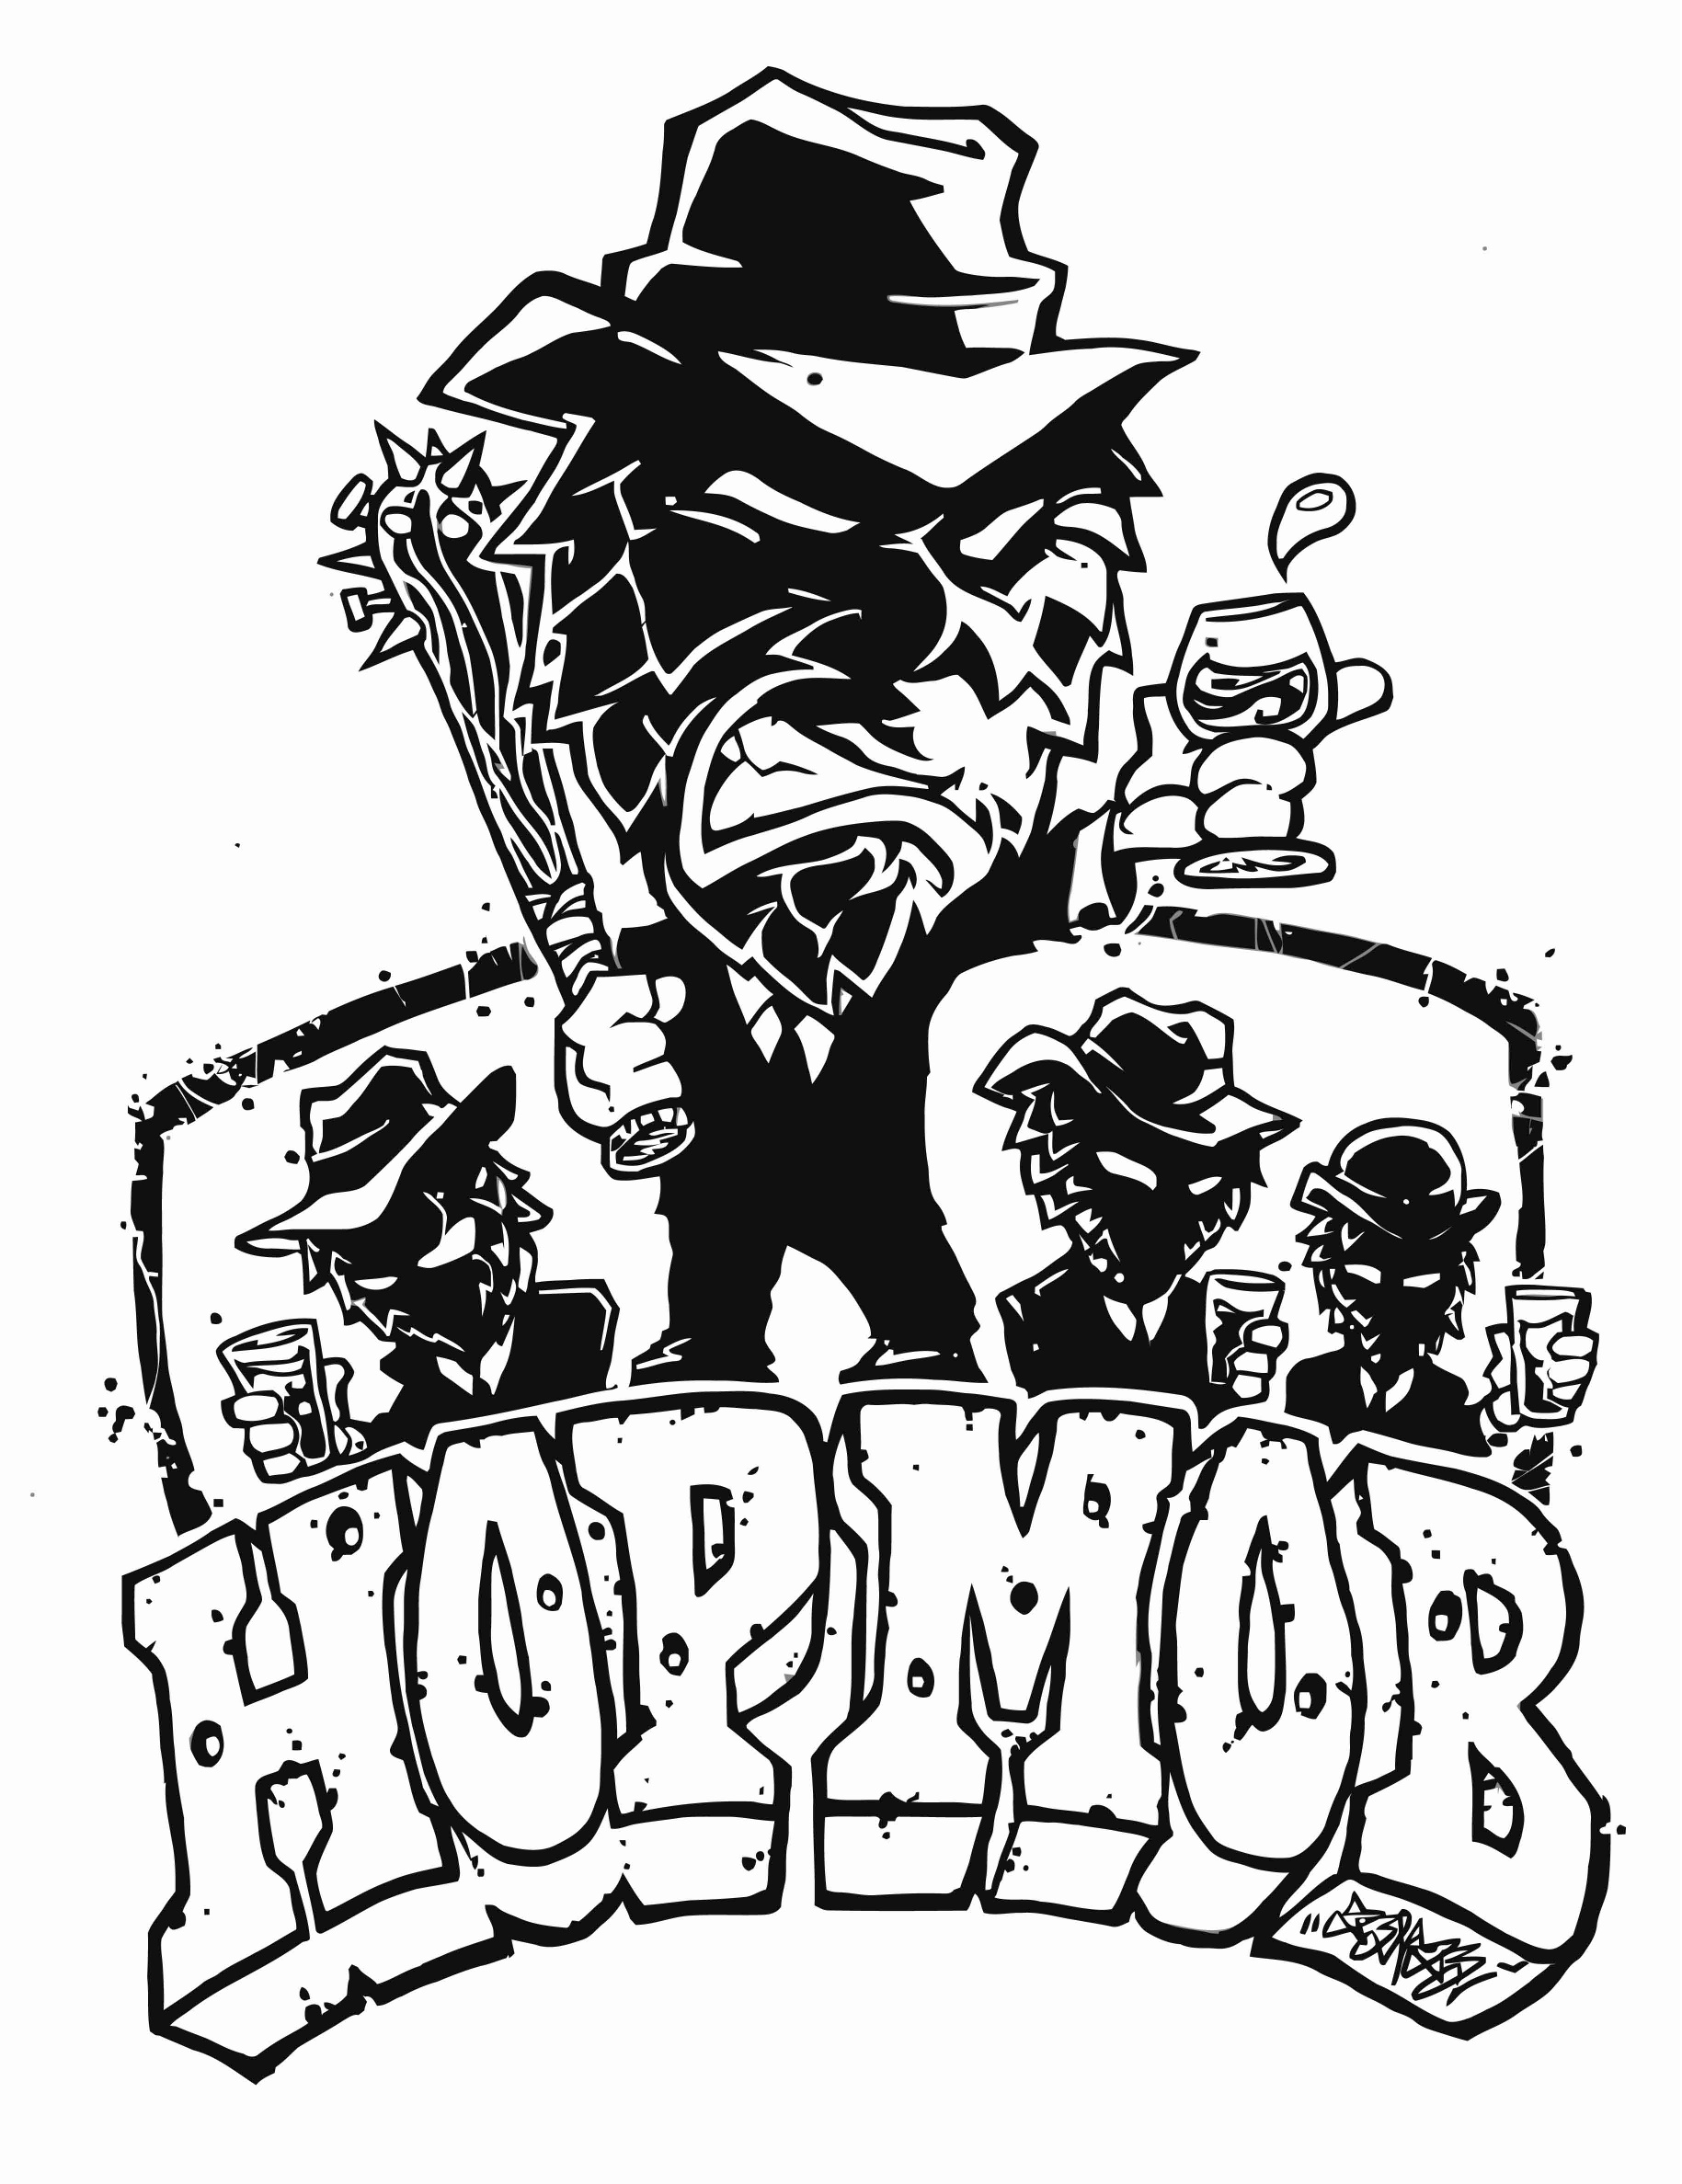 Thursday, February 2nd @3pm.  3rd Annual Hop Mob Kickoff Event